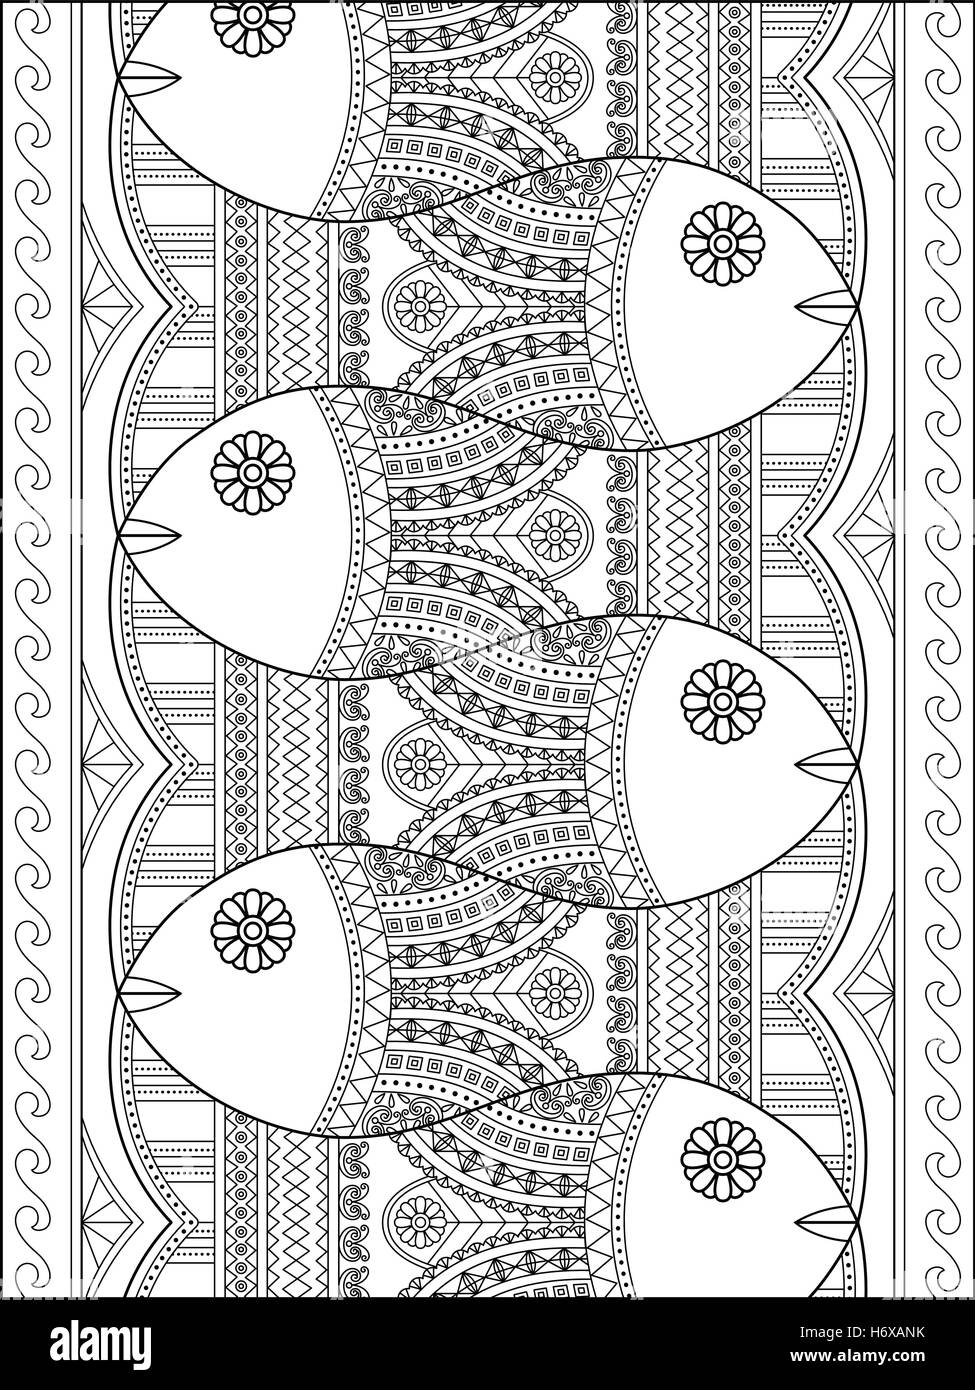 Lovely Adult Coloring Page Cute Fish With Geometric